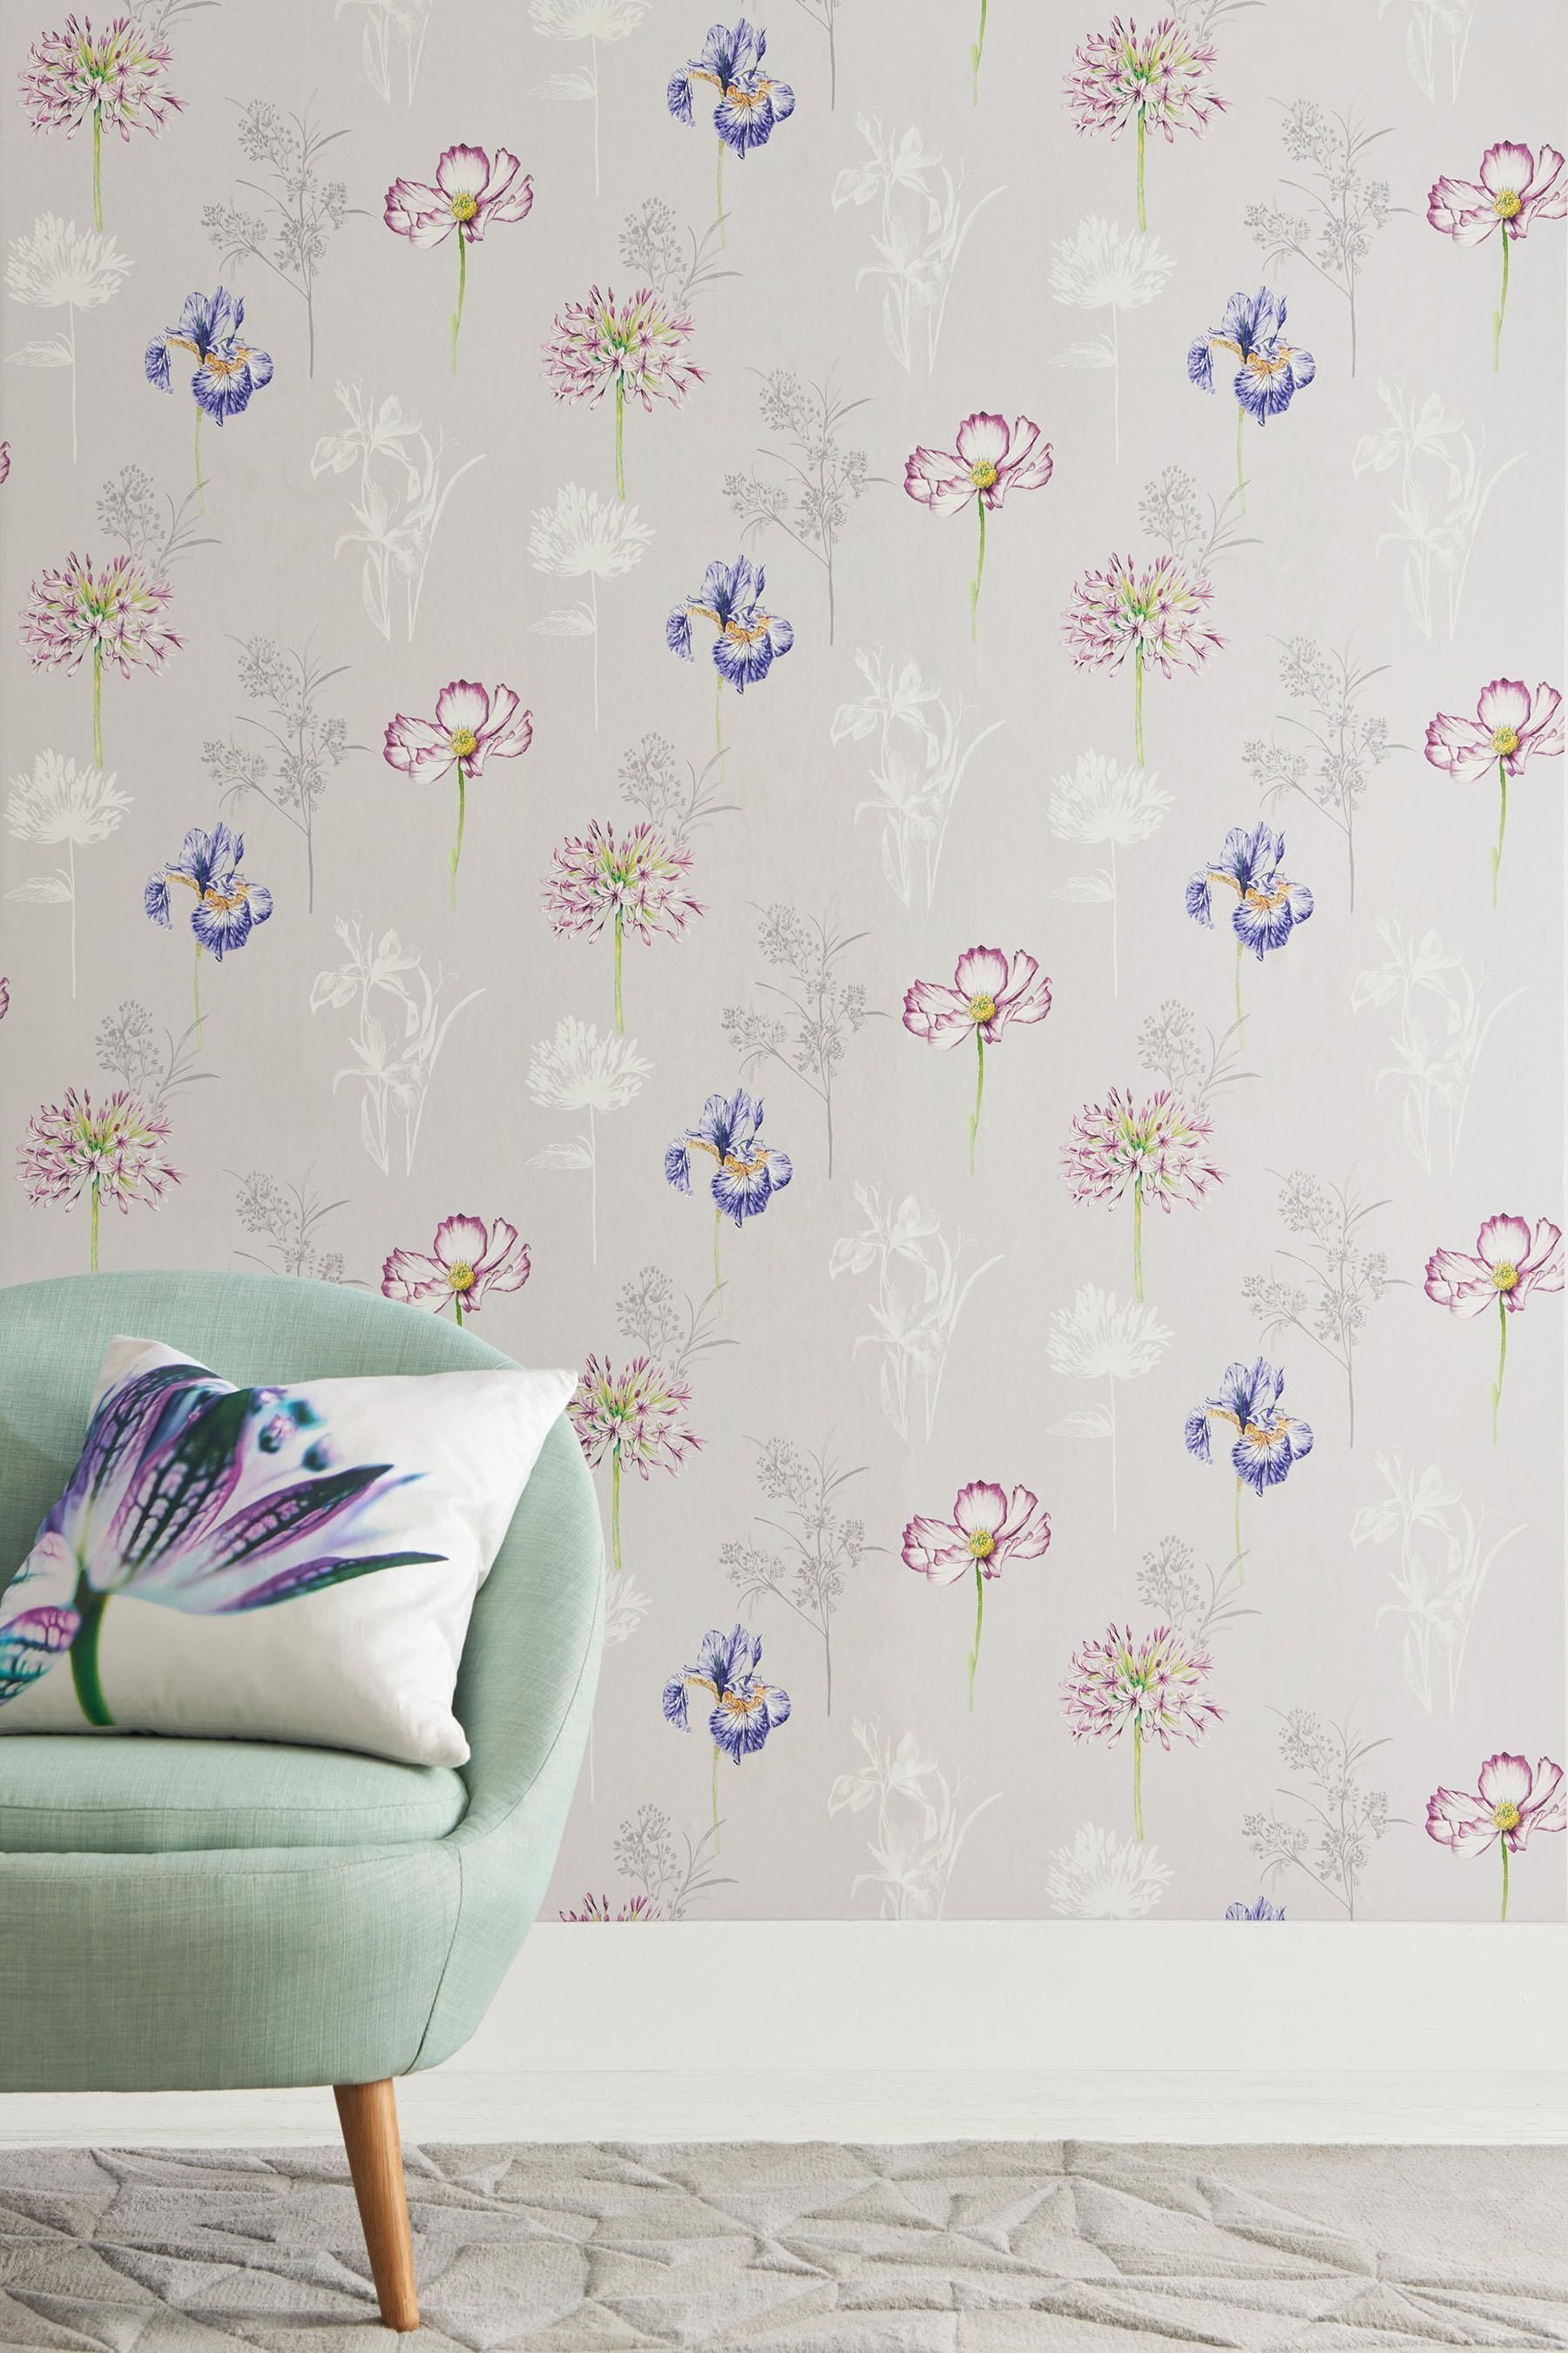 Buy Paste The Wall Illustrative Fusion Flower Wallpaper from the